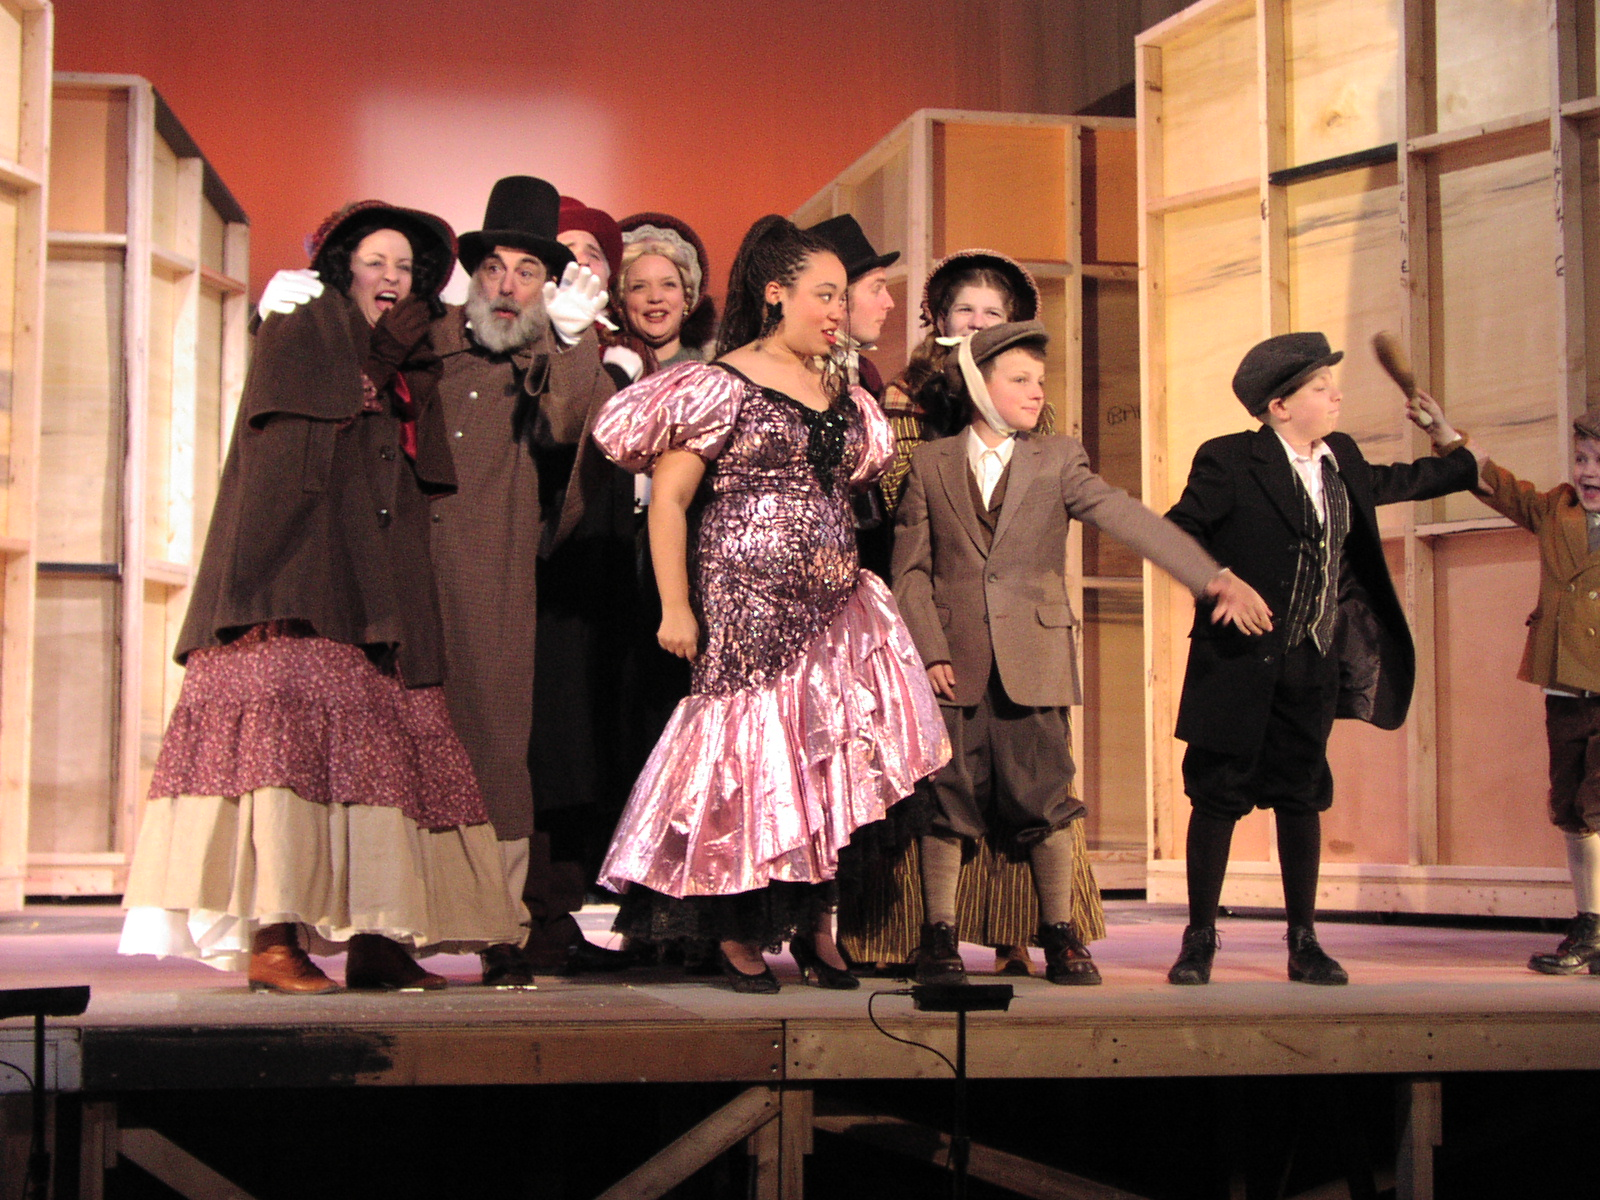 Mrs. Bob Cratchit's Wild Christmas Binge – Dress Rehearsal